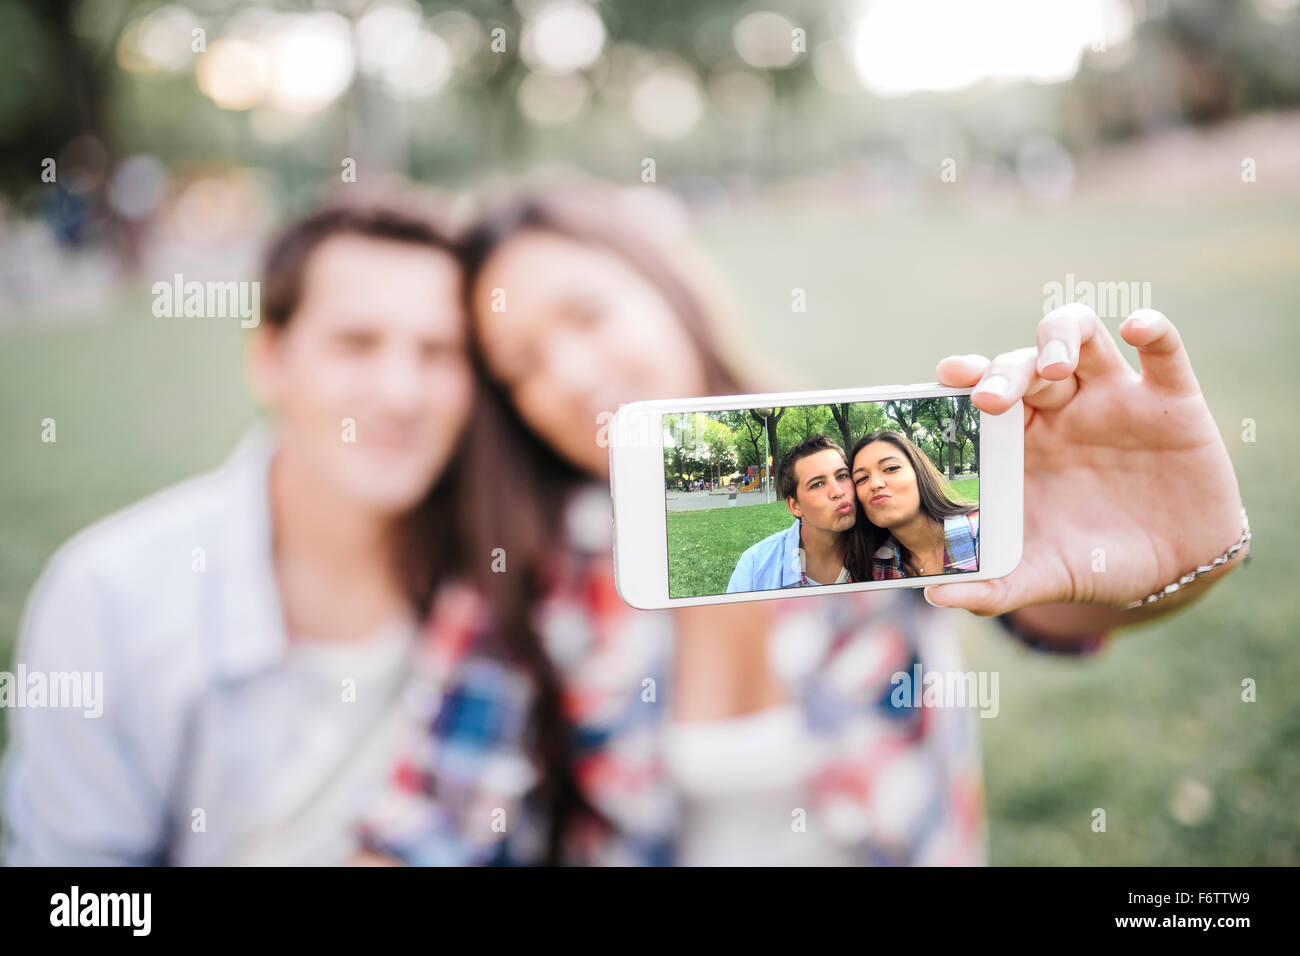 Sur l'affichage de photos d'un smartphone de young couple in love Photo Stock